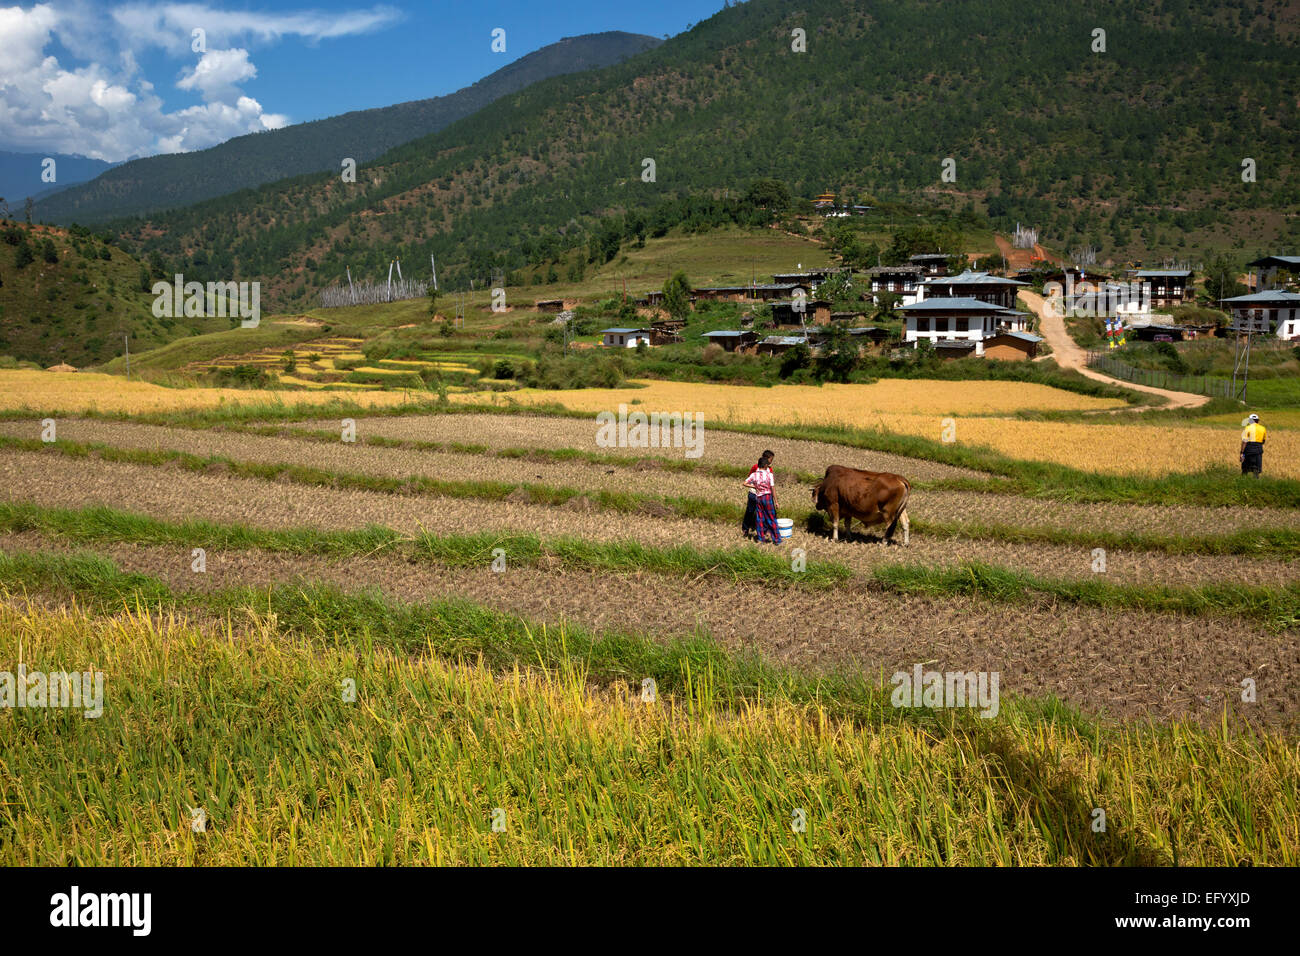 BU00108-00...BHUTAN - Pastoral scene along the trail to Chimi Lhakhang, a temple devoted to the Divine Madman. - Stock Image